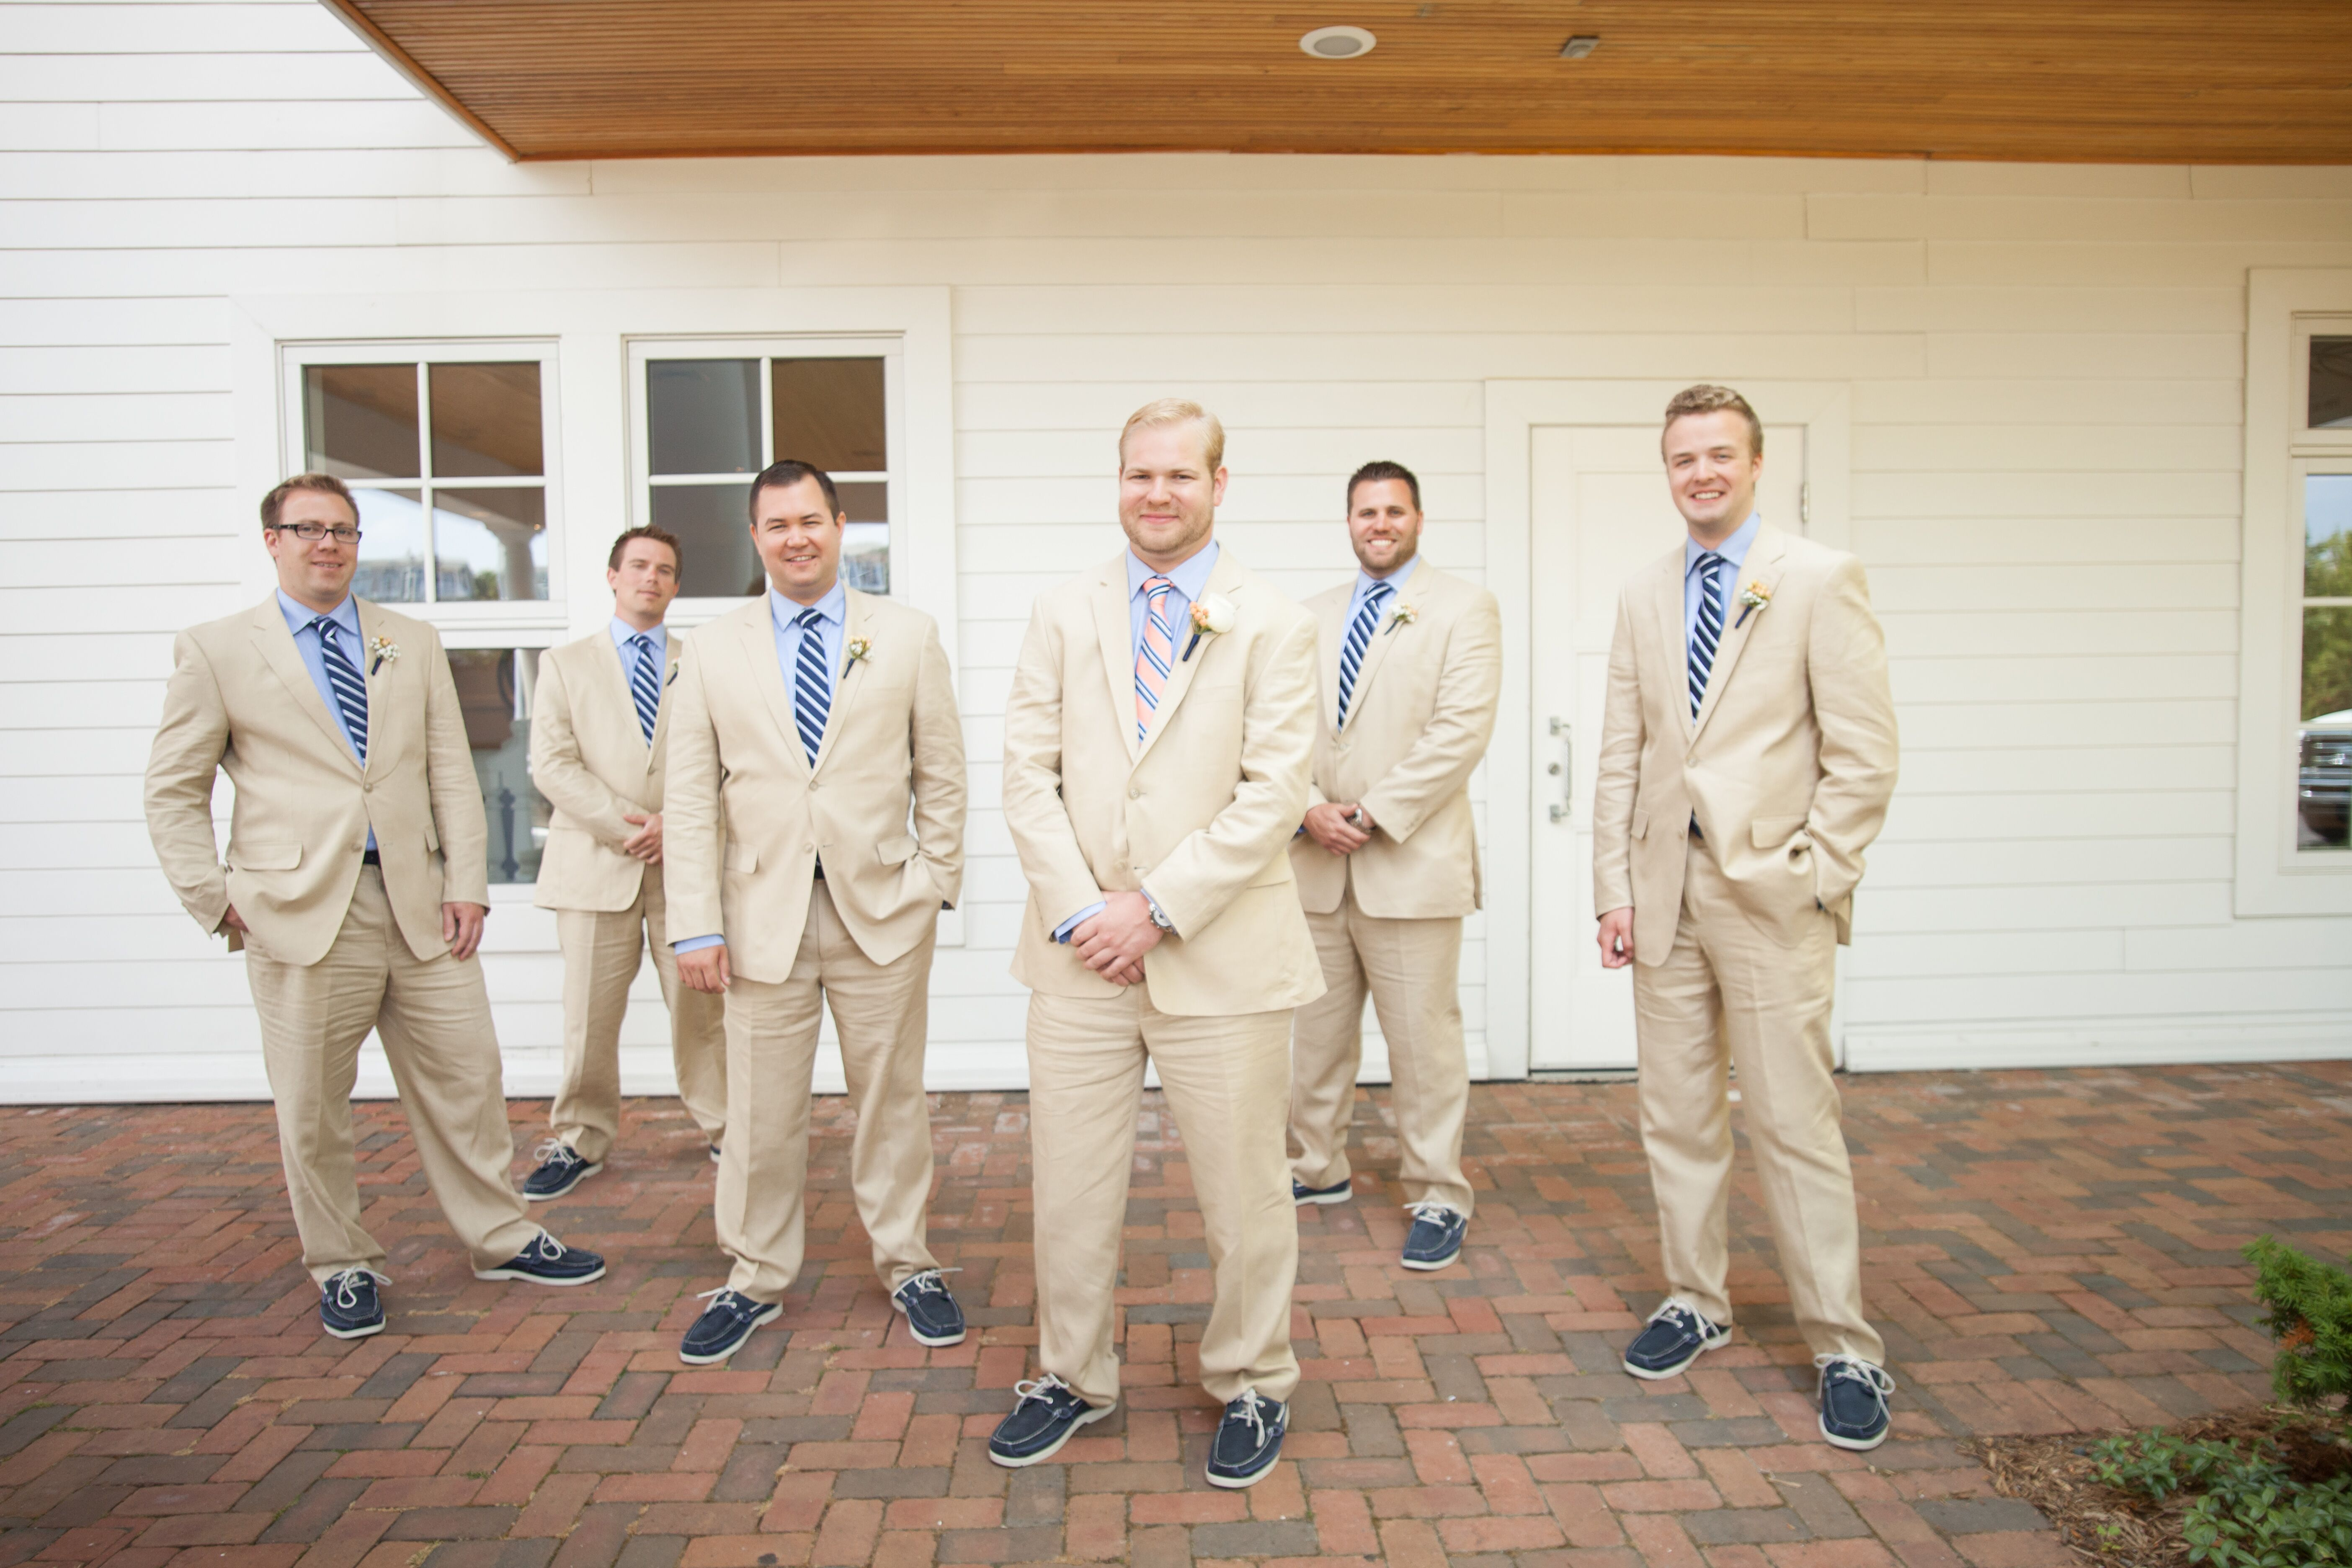 groomsmen in tan suits with striped navy ties and boat shoes